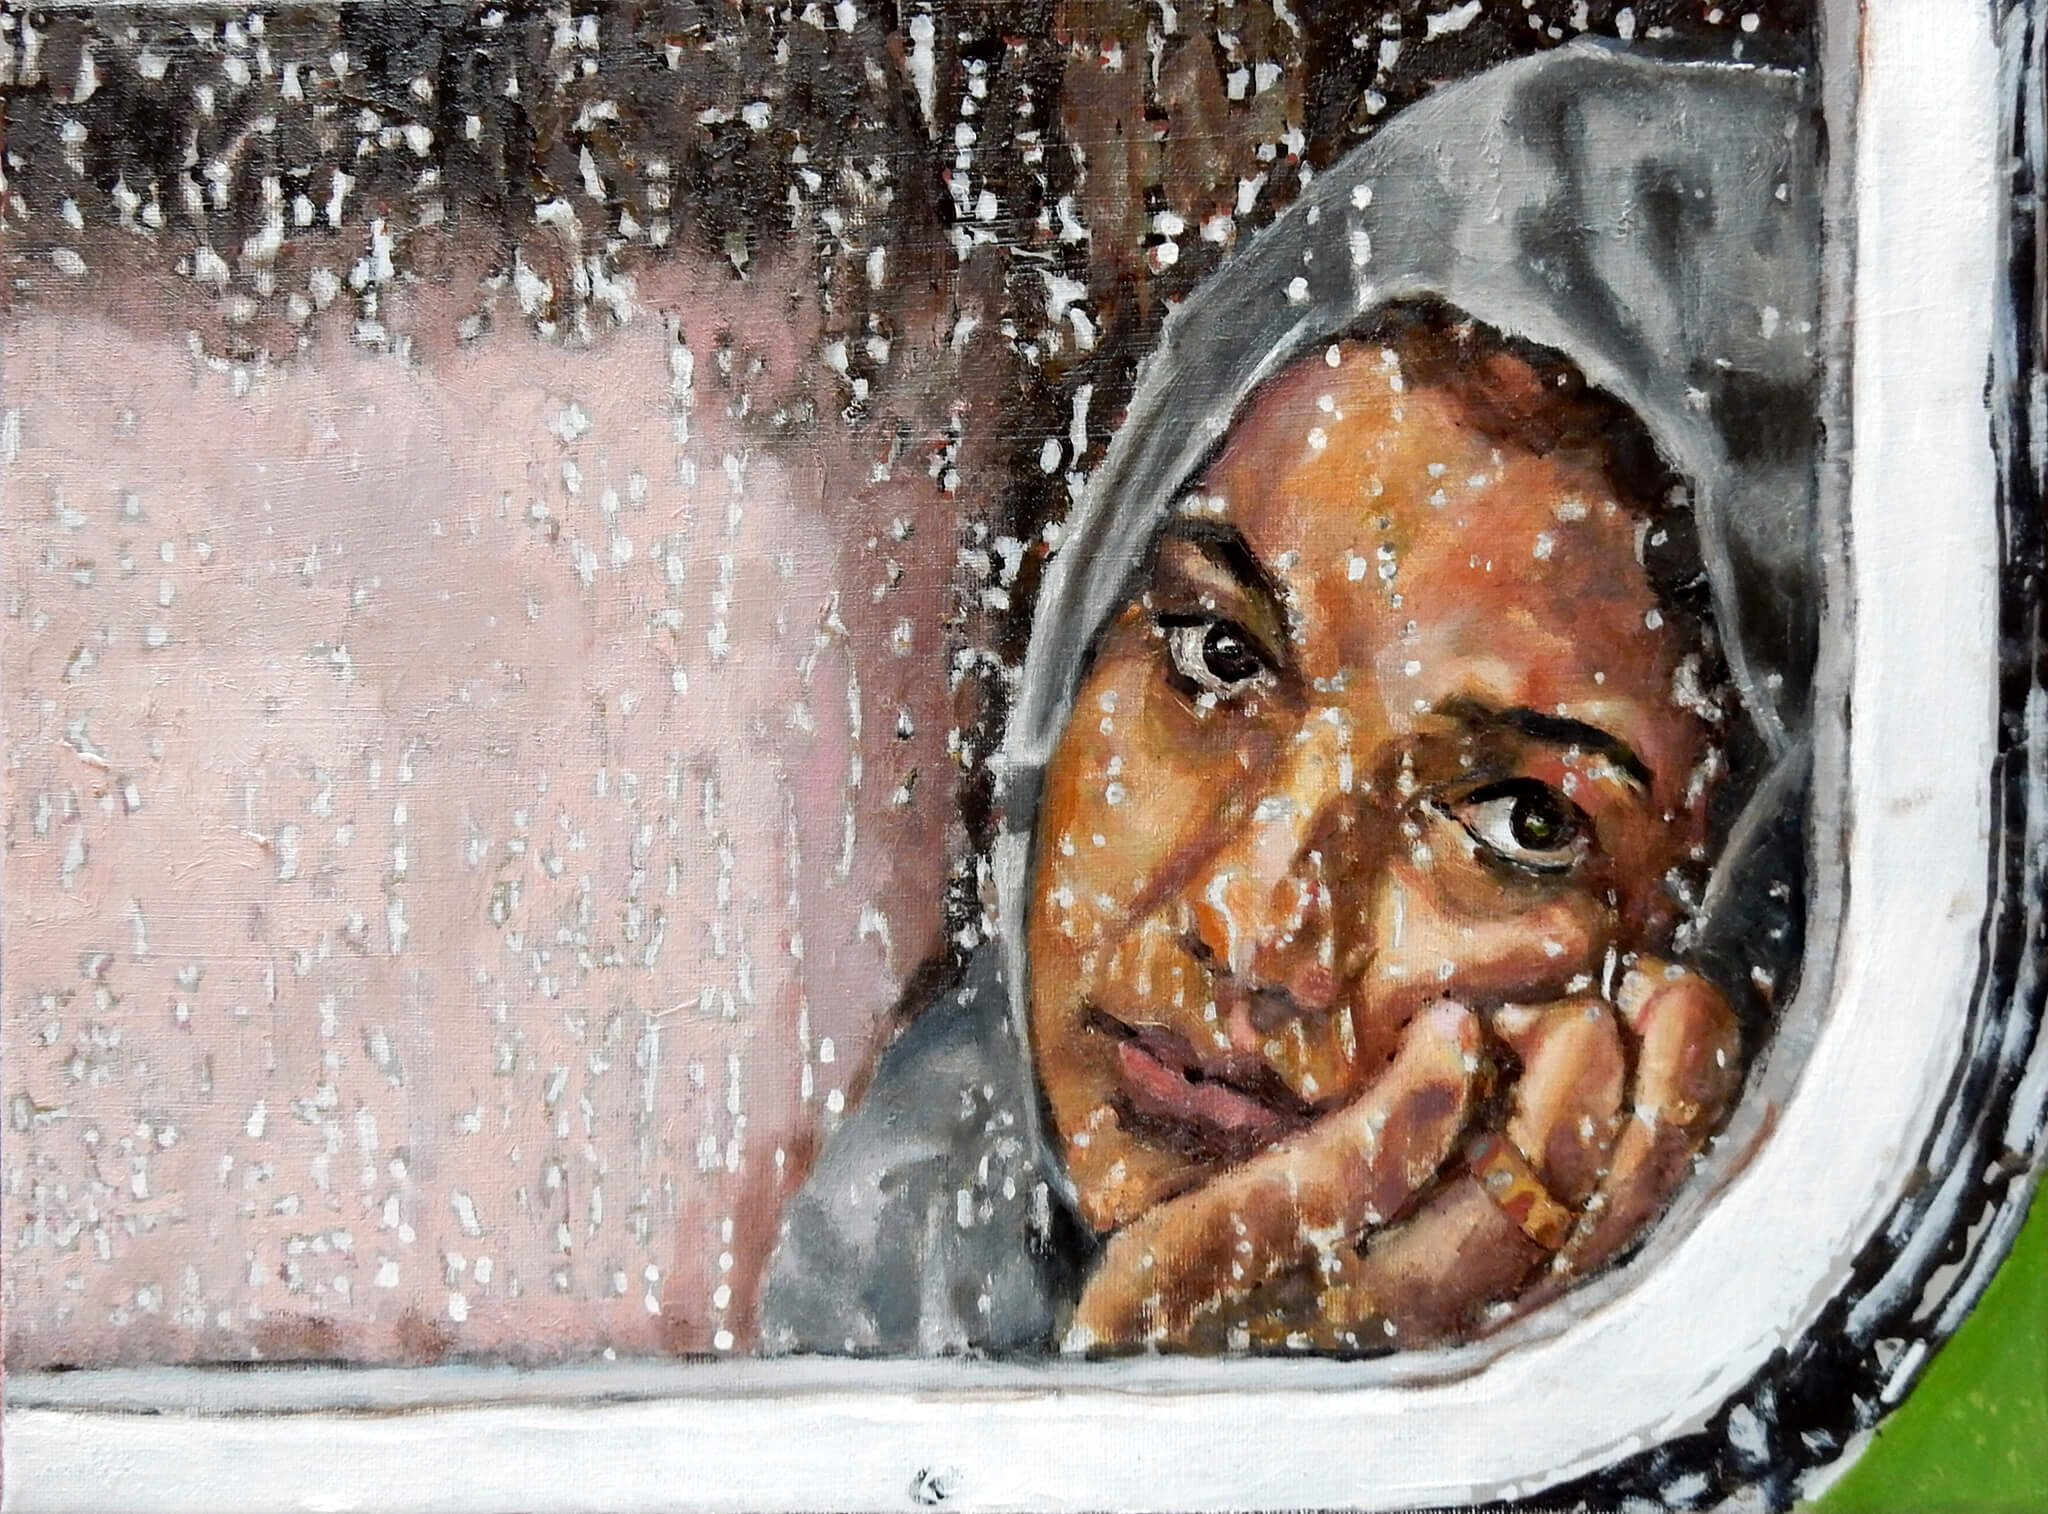 A migrant at Bicske Hungary oil on canvas portrait artwork by Stella Tooth inspired by photo by Petr David Josek.